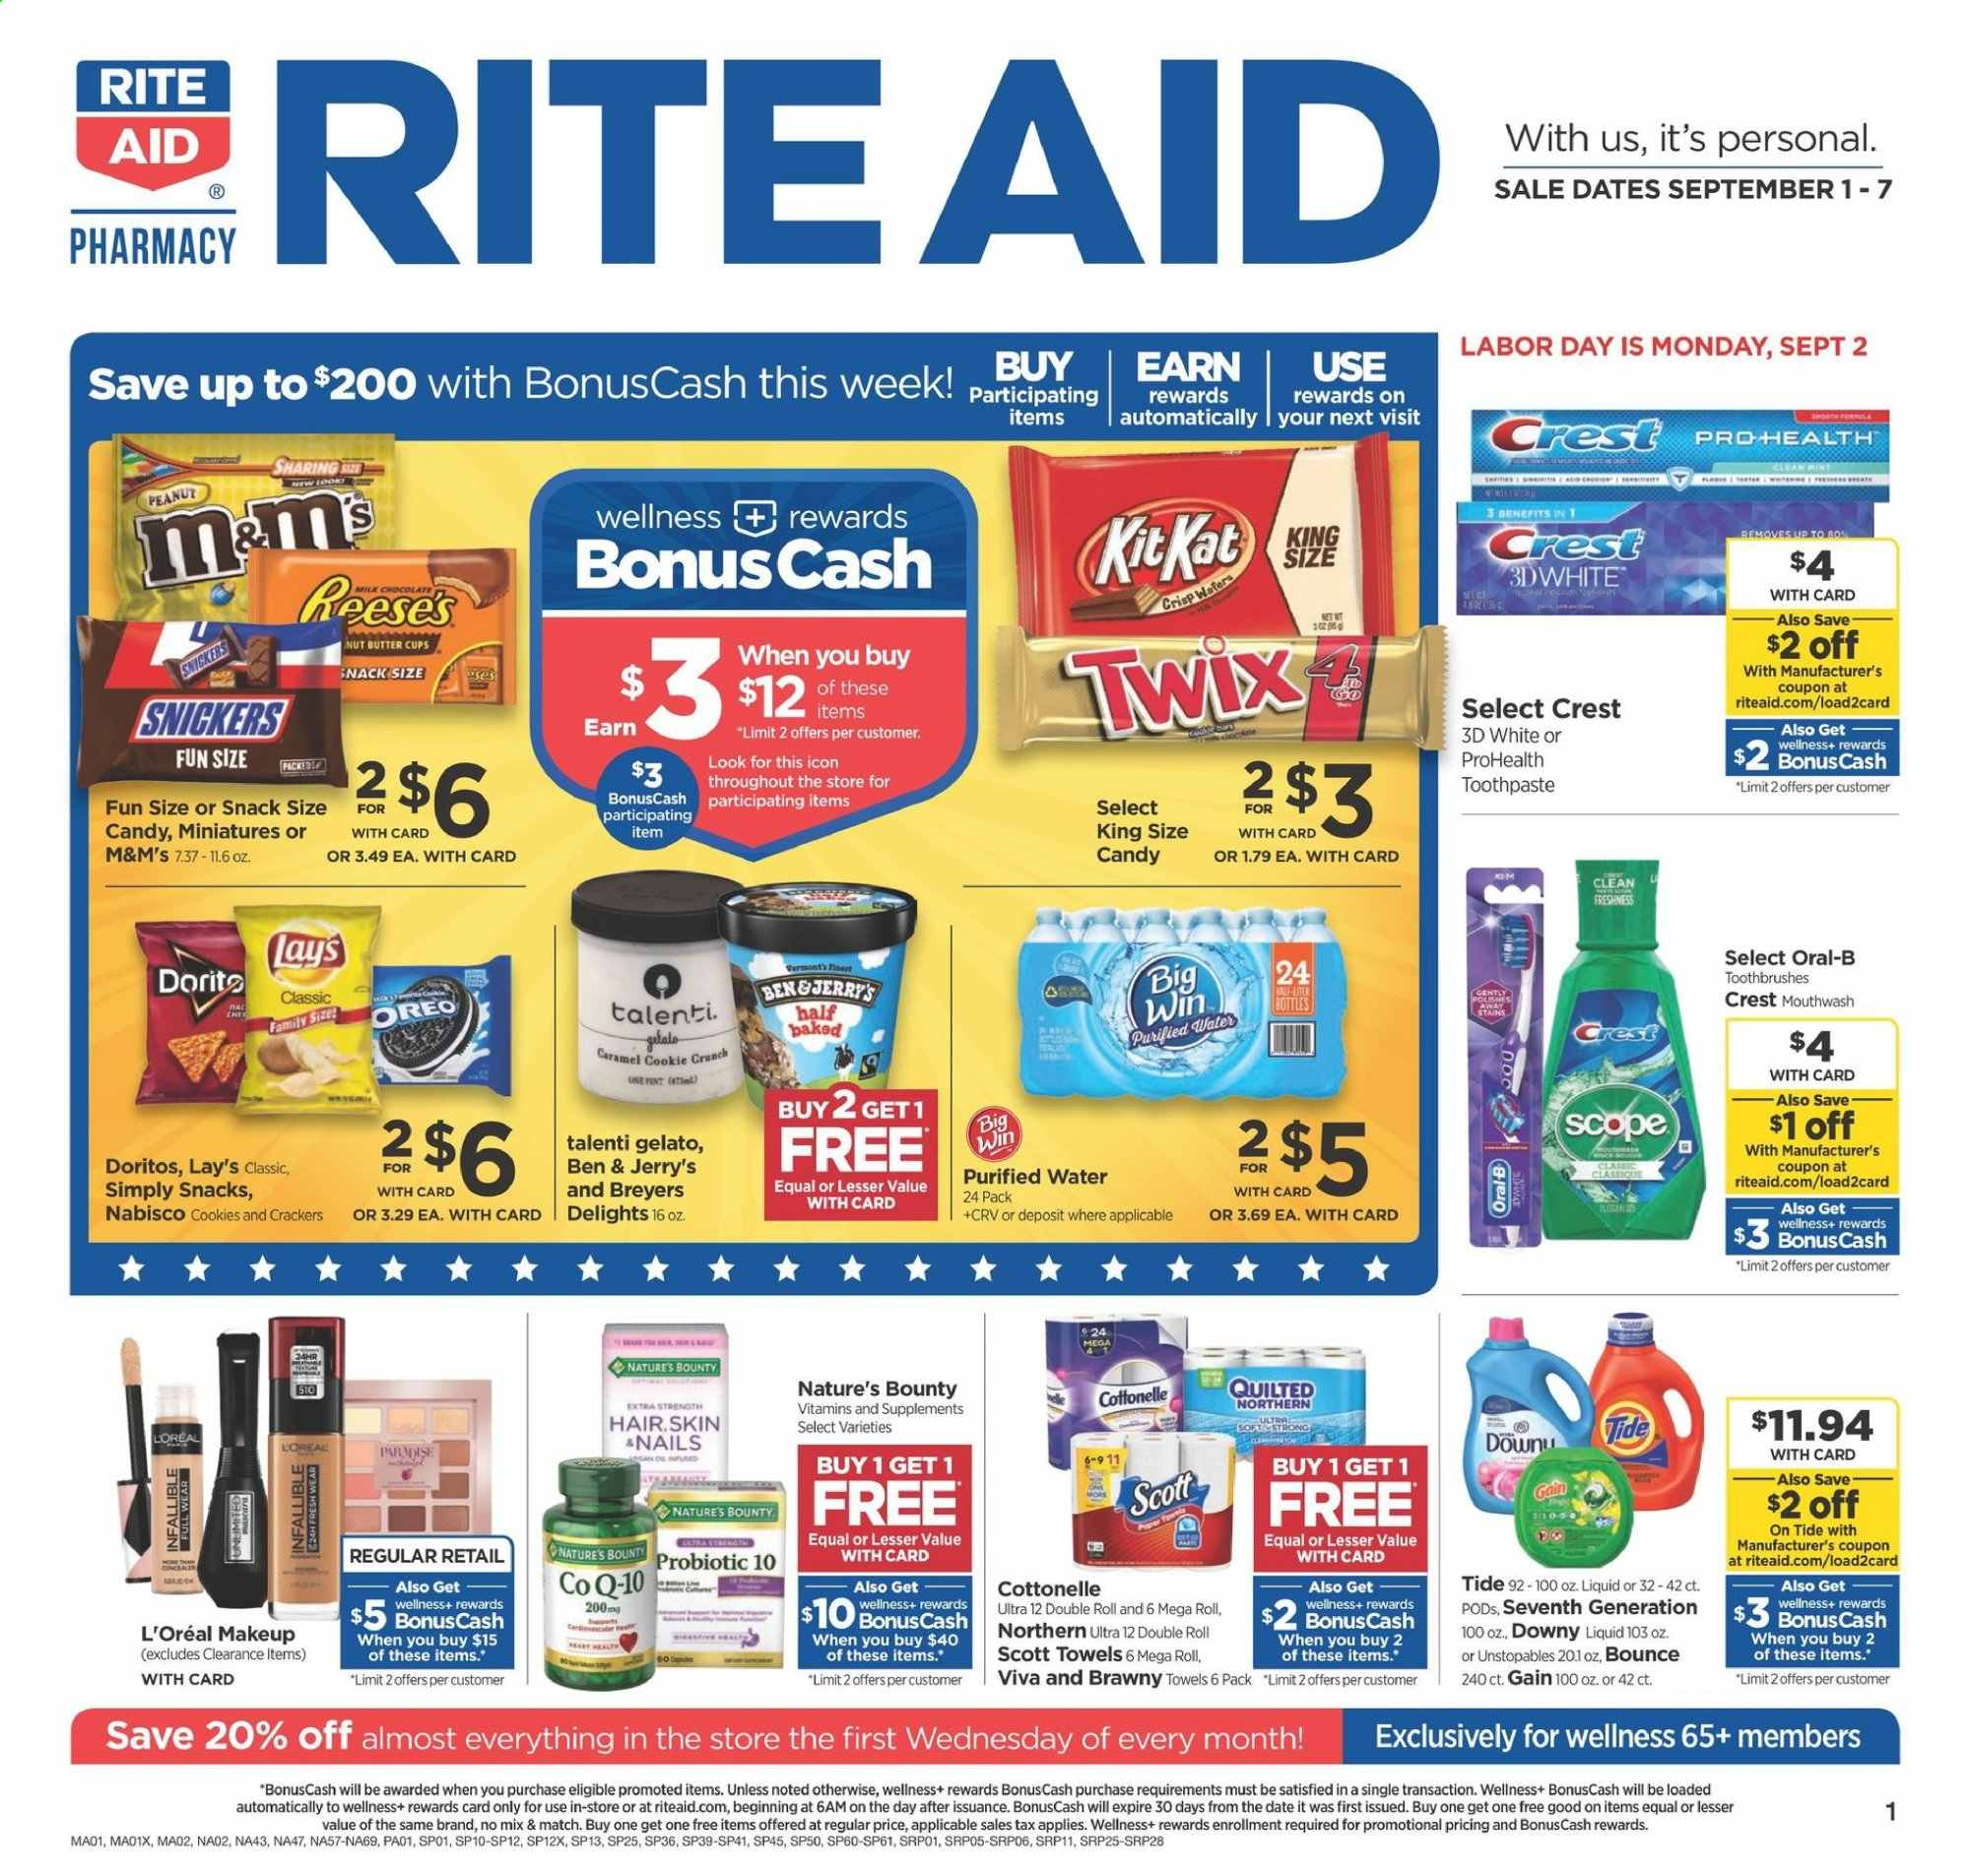 RITE AID Flyer - 09.01.2019 - 09.07.2019 - Sales products - ale, bounce, butter, cookies, cottonelle, crackers, crest, dates, doritos, downy, gain, gelato, l'oréal, makeup, milk, nature's bounty, scott, tide, towel, unstopables, peanuts, oreo, oral-b, candy, toothpaste, snack, lay's, quilted northern, car, snickers, twix, bounty, mouthwash, liquid, extra strength, purified water, m&m's. Page 1.